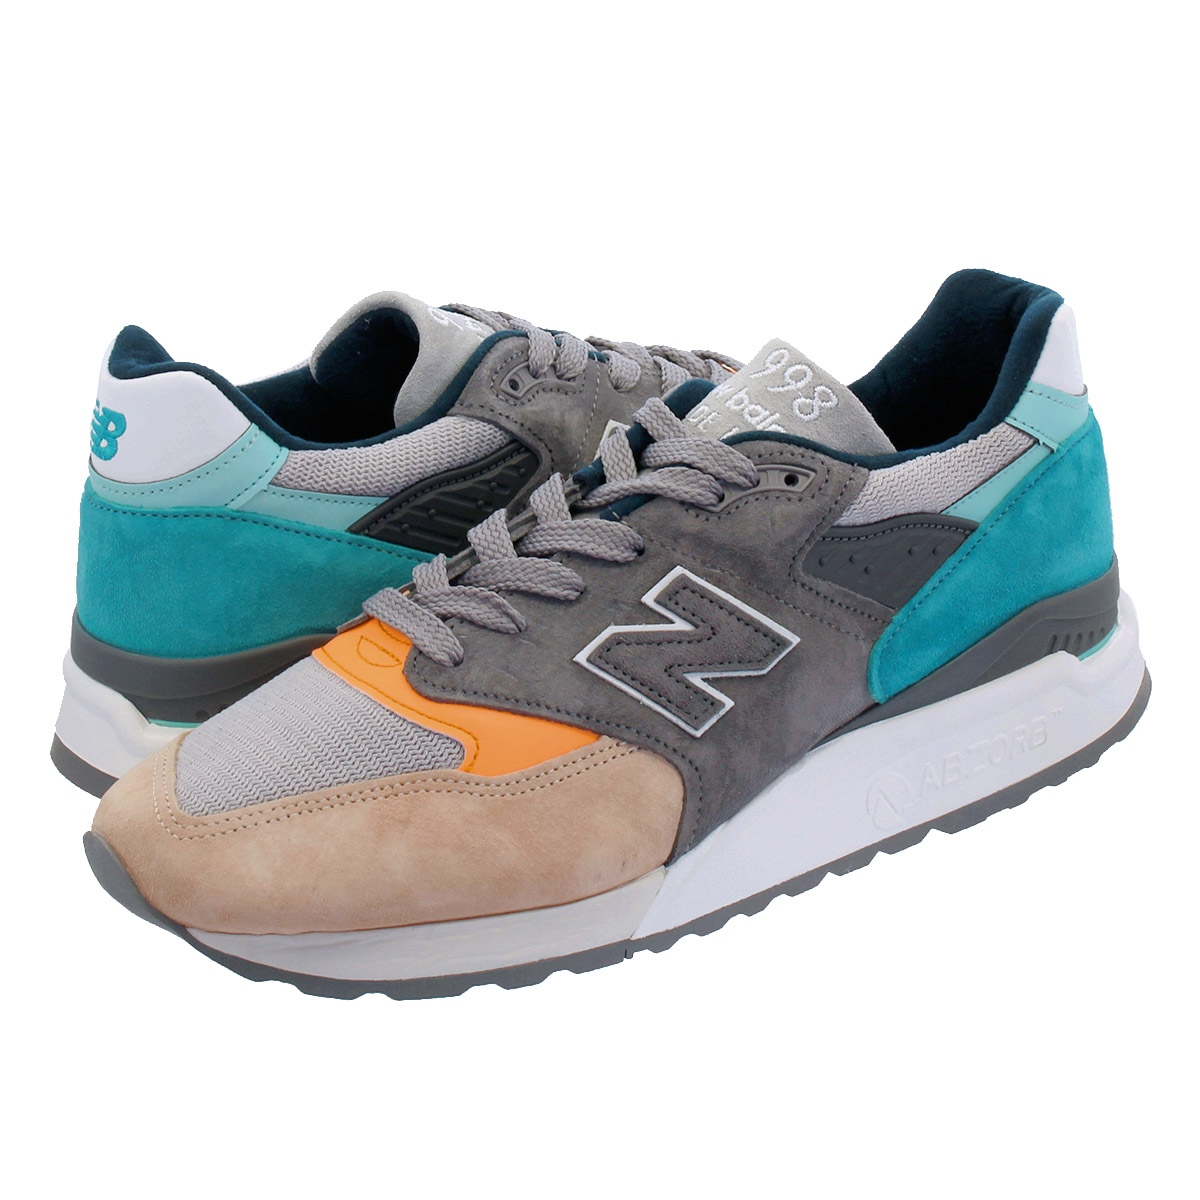 NEW BALANCE M998AWB 【MADE IN U.S.A.】 ニューバランス M 998 AWB GREY/BLUE